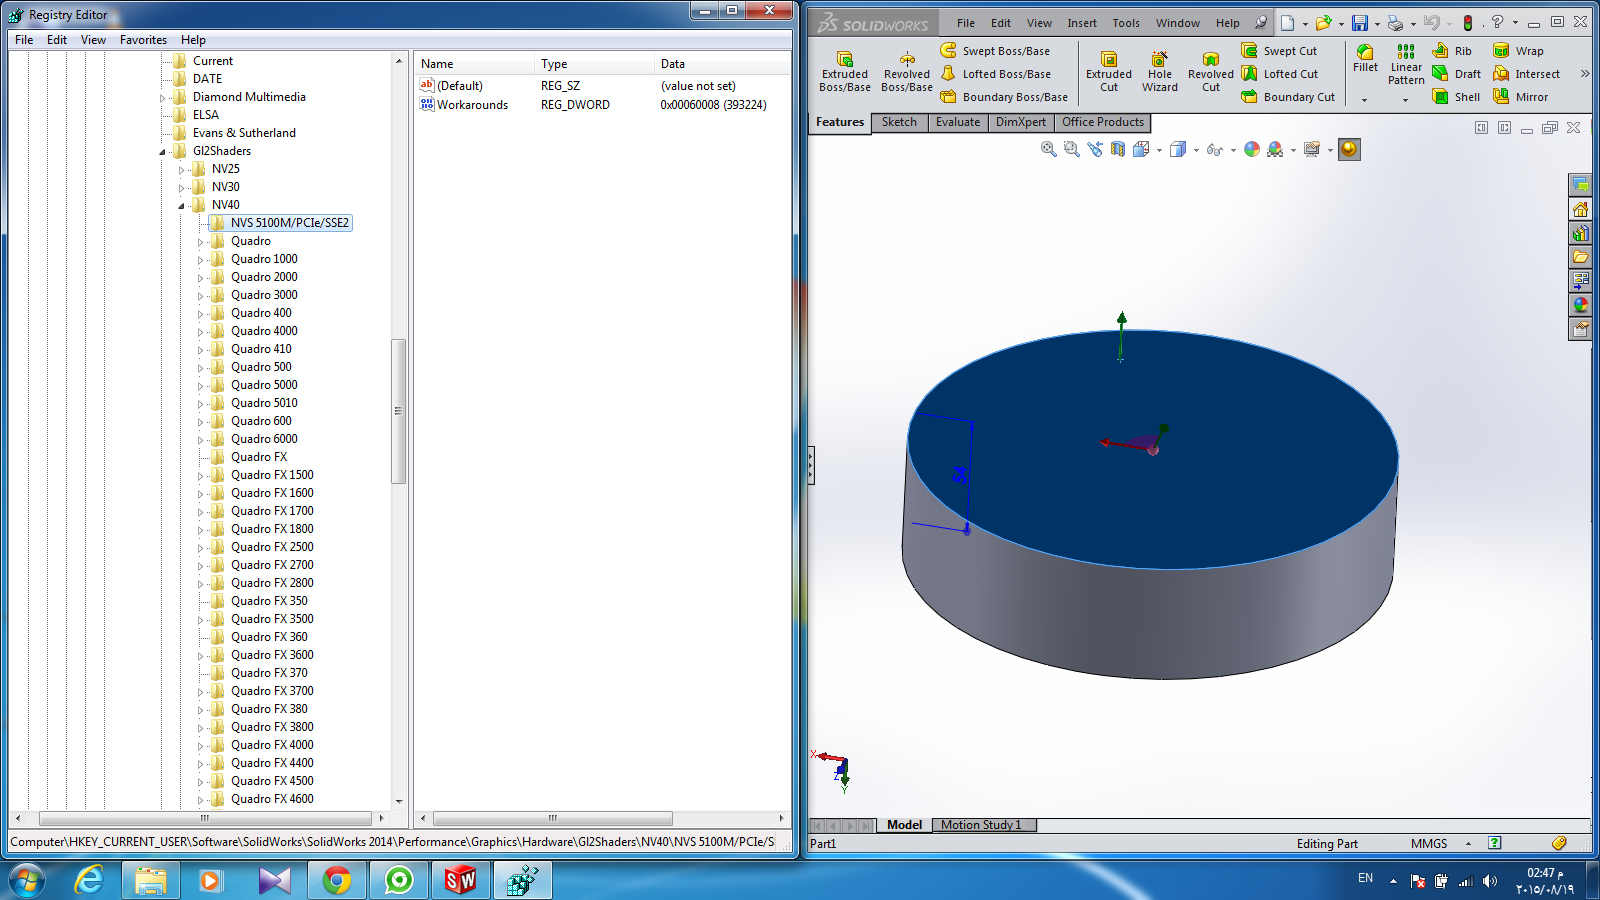 Tutorials featuring RealView, in SolidWorks 2015 | GrabCAD